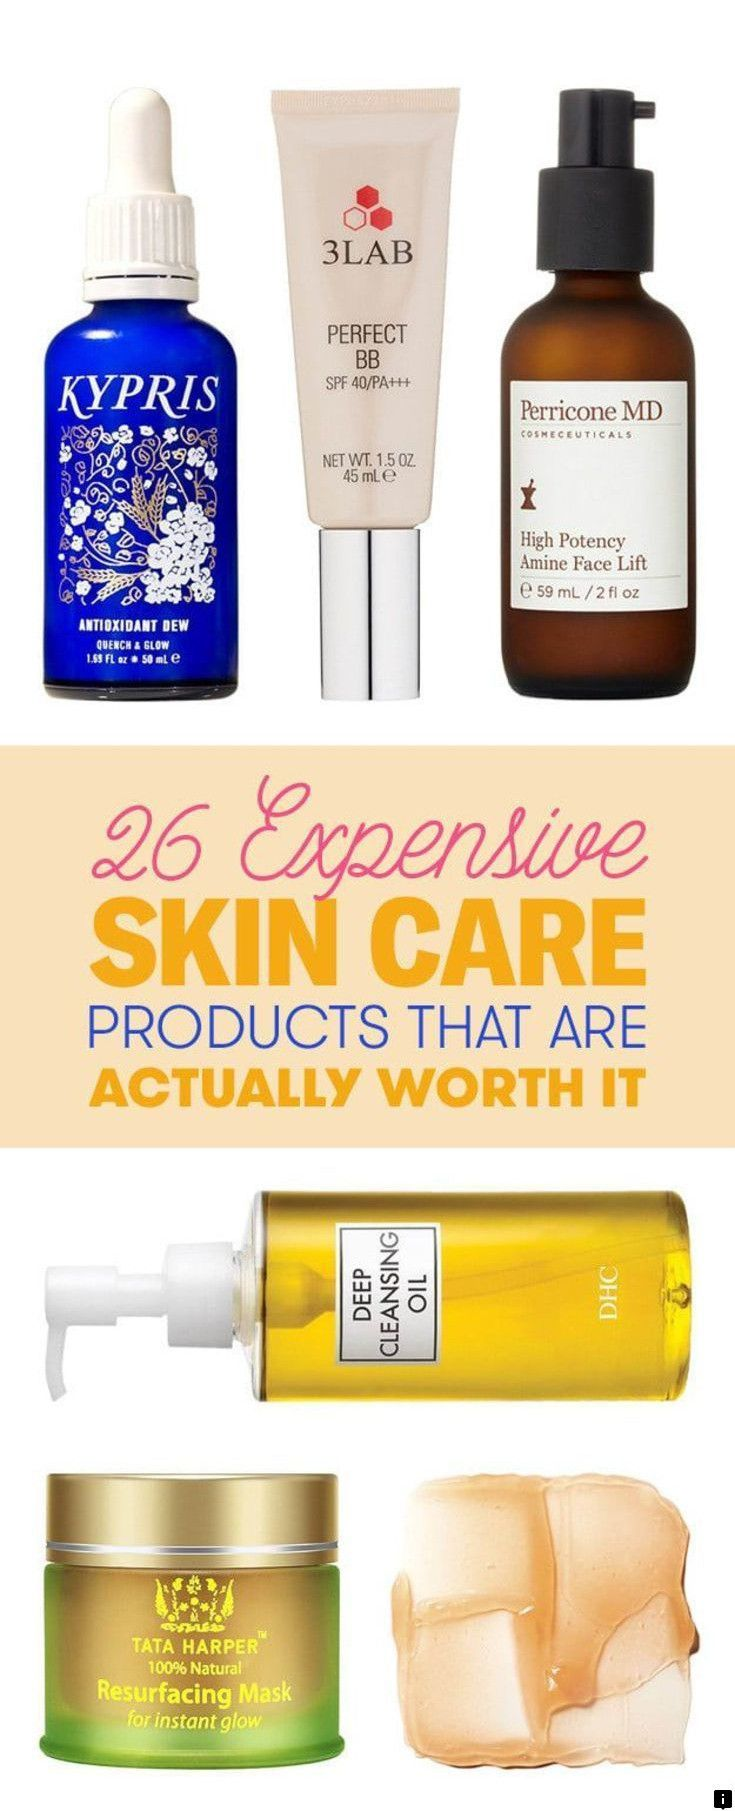 >>Read more about eminence skin care. Click the link to